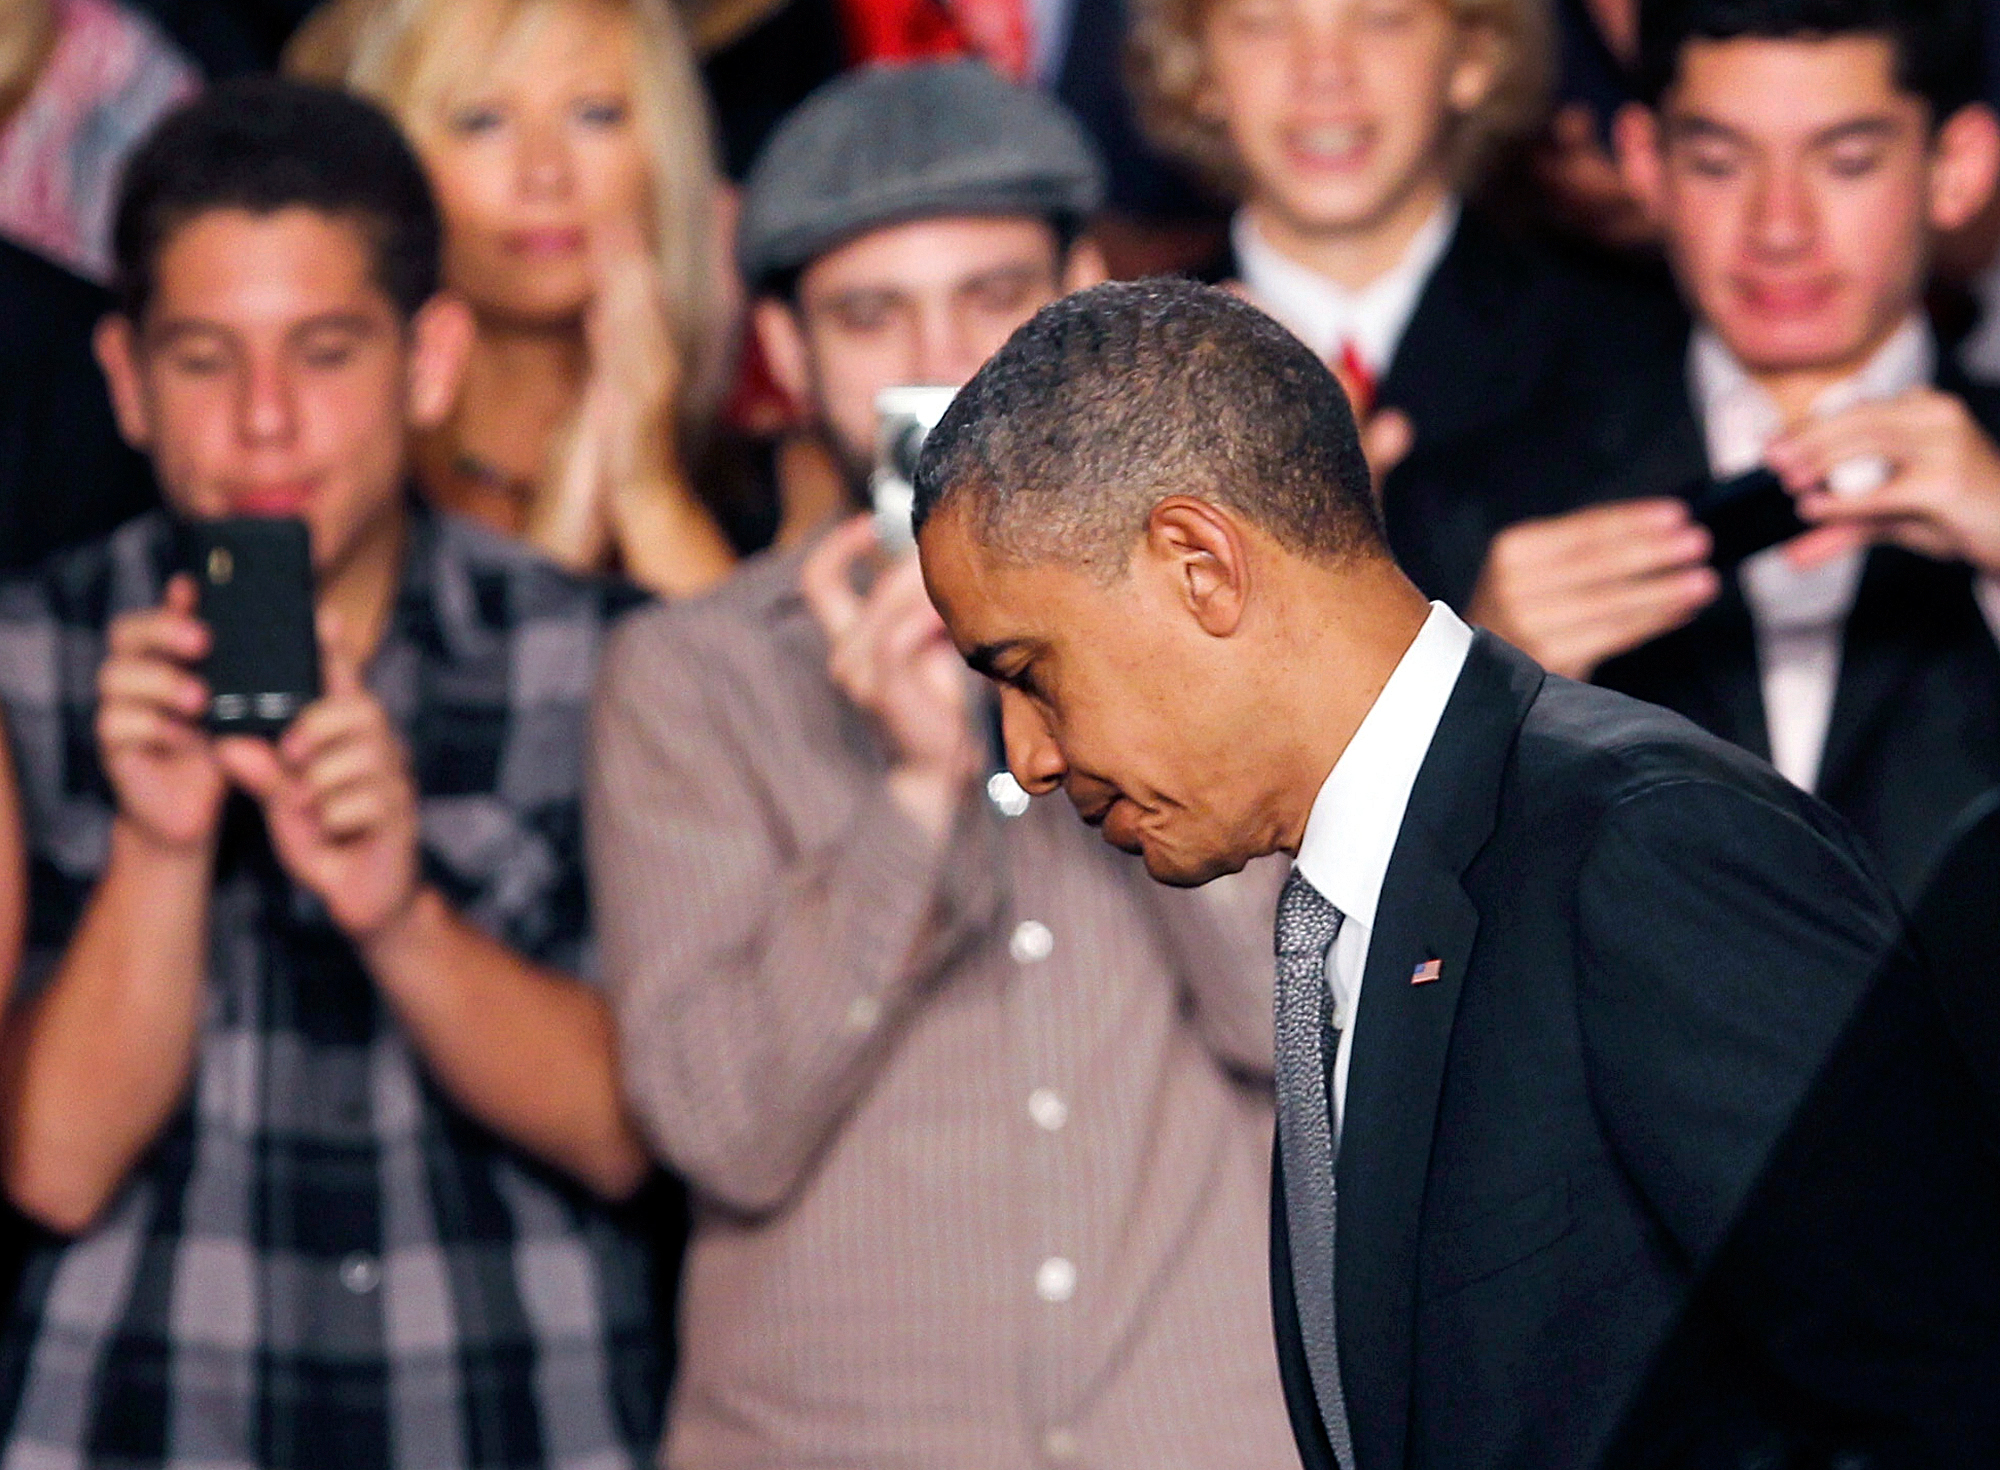 President Barack Obama walks off the stage after speaking about the Aurora, Colorado shooting in Fort Myers, Florida, July 20, 2012.